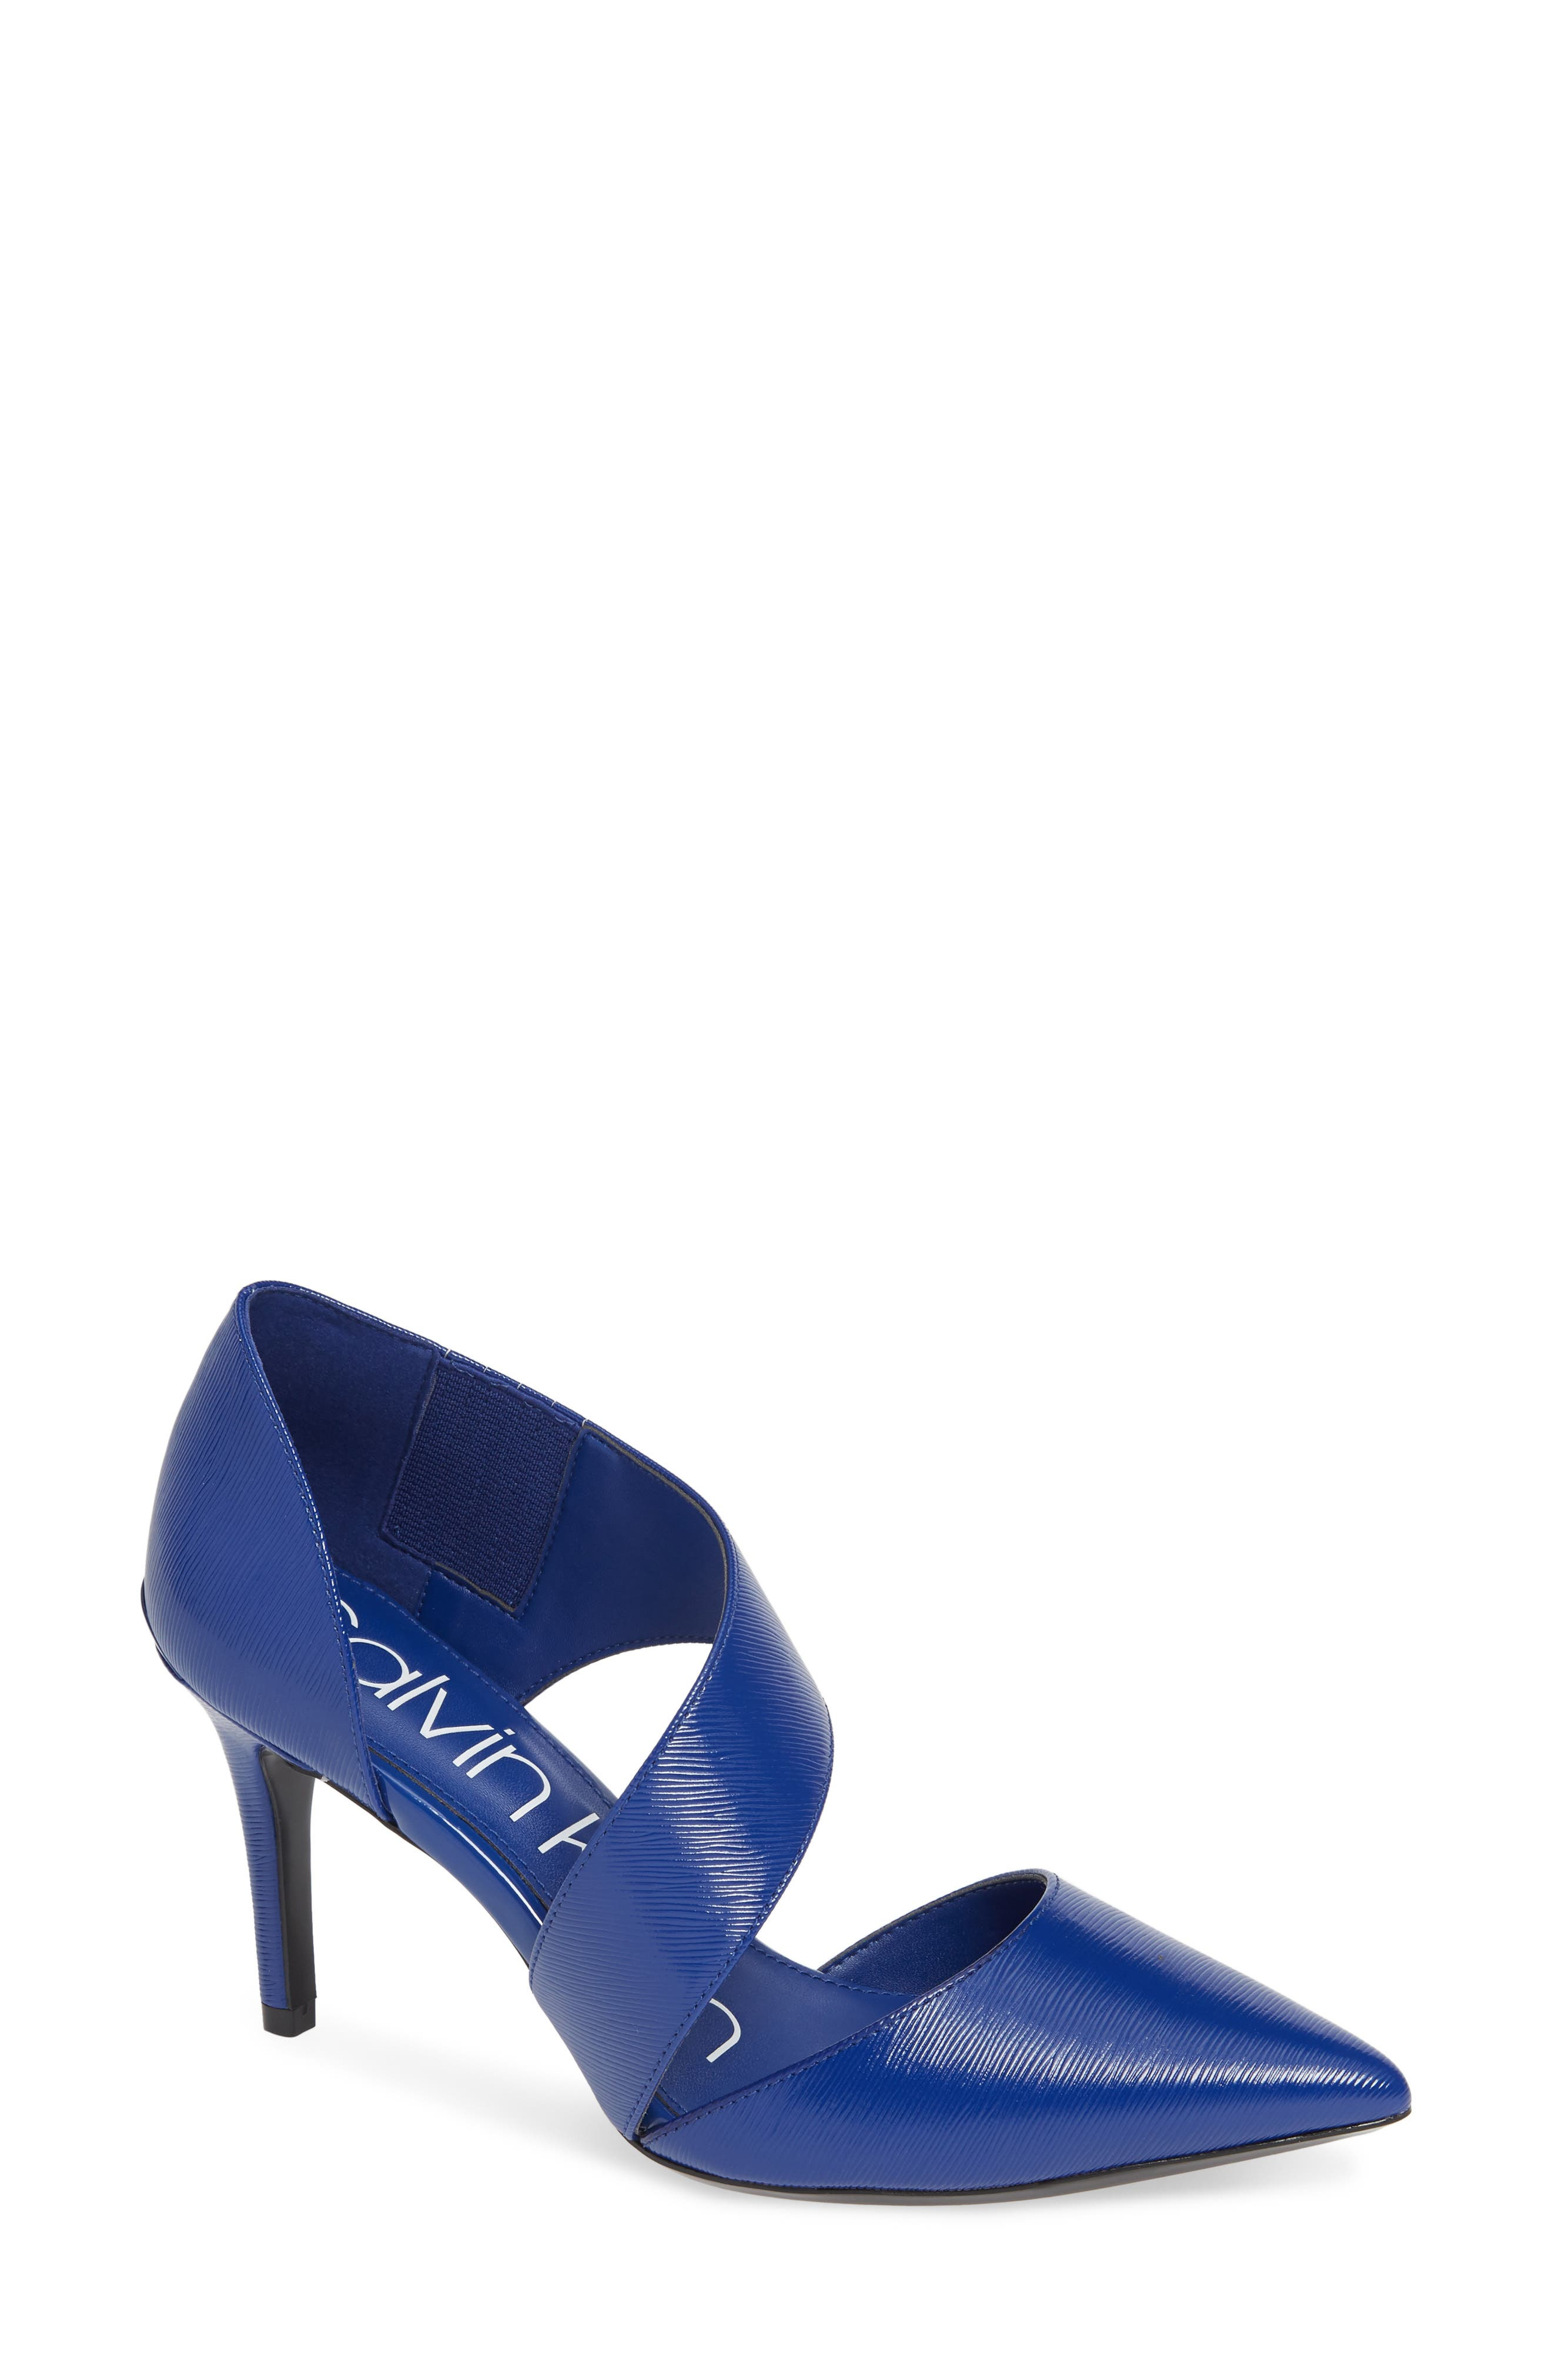 CALVIN KLEIN, 'Gella' Pointy Toe Pump, Main thumbnail 1, color, ROYAL BLUE PATENT LEATHER